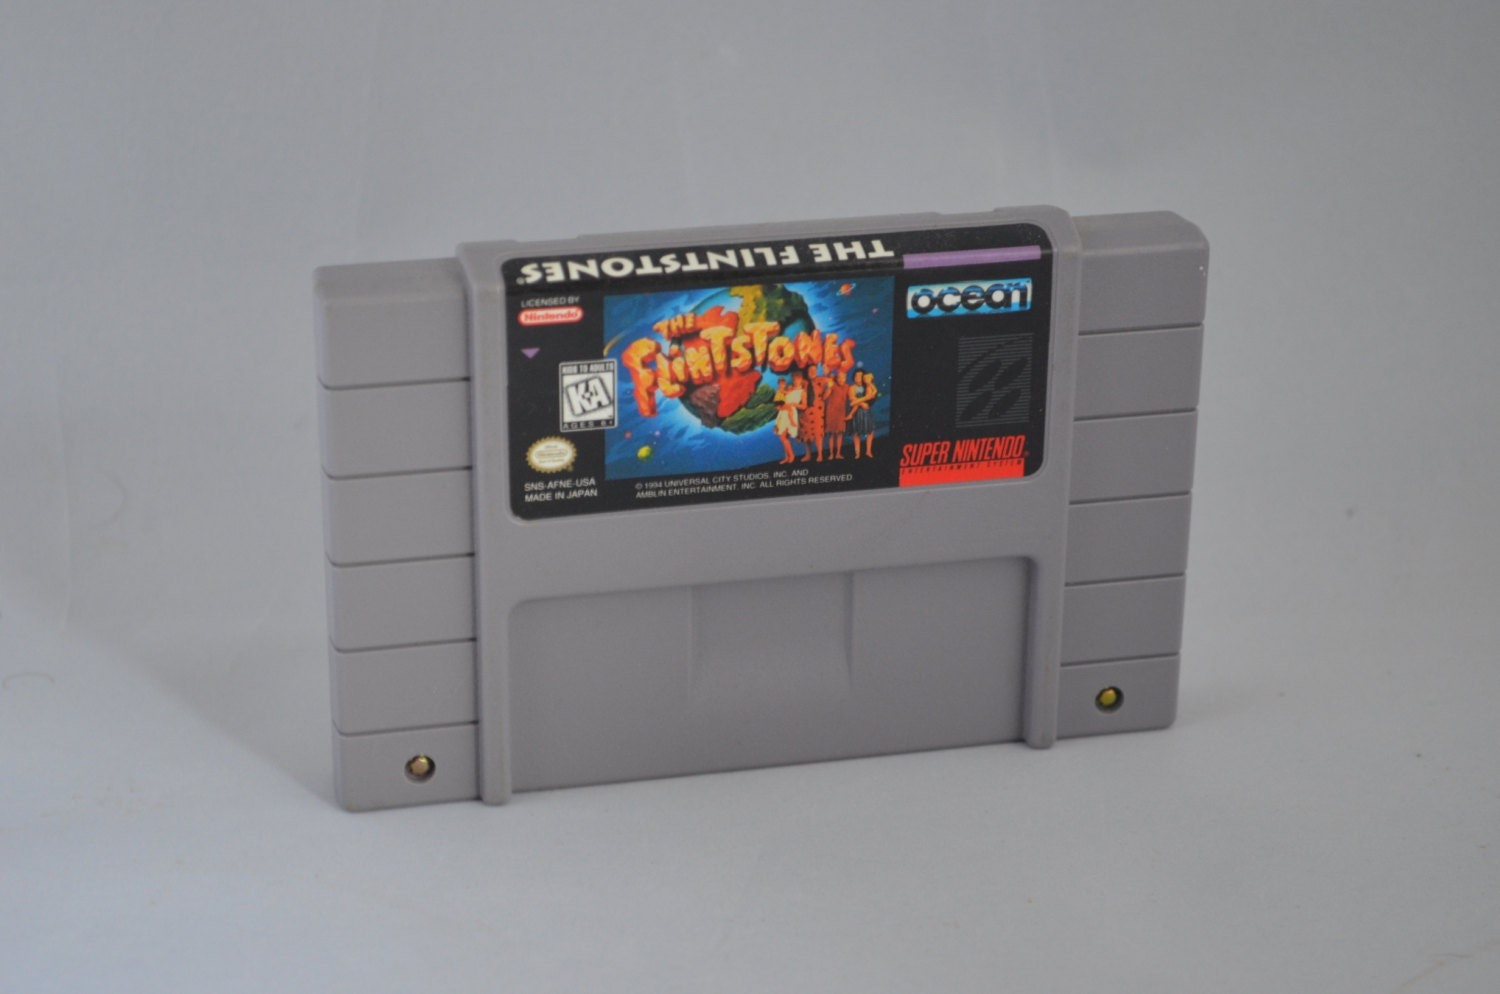 Super Nintendo Entertainment System : Super nintendo entertainment system snes video game